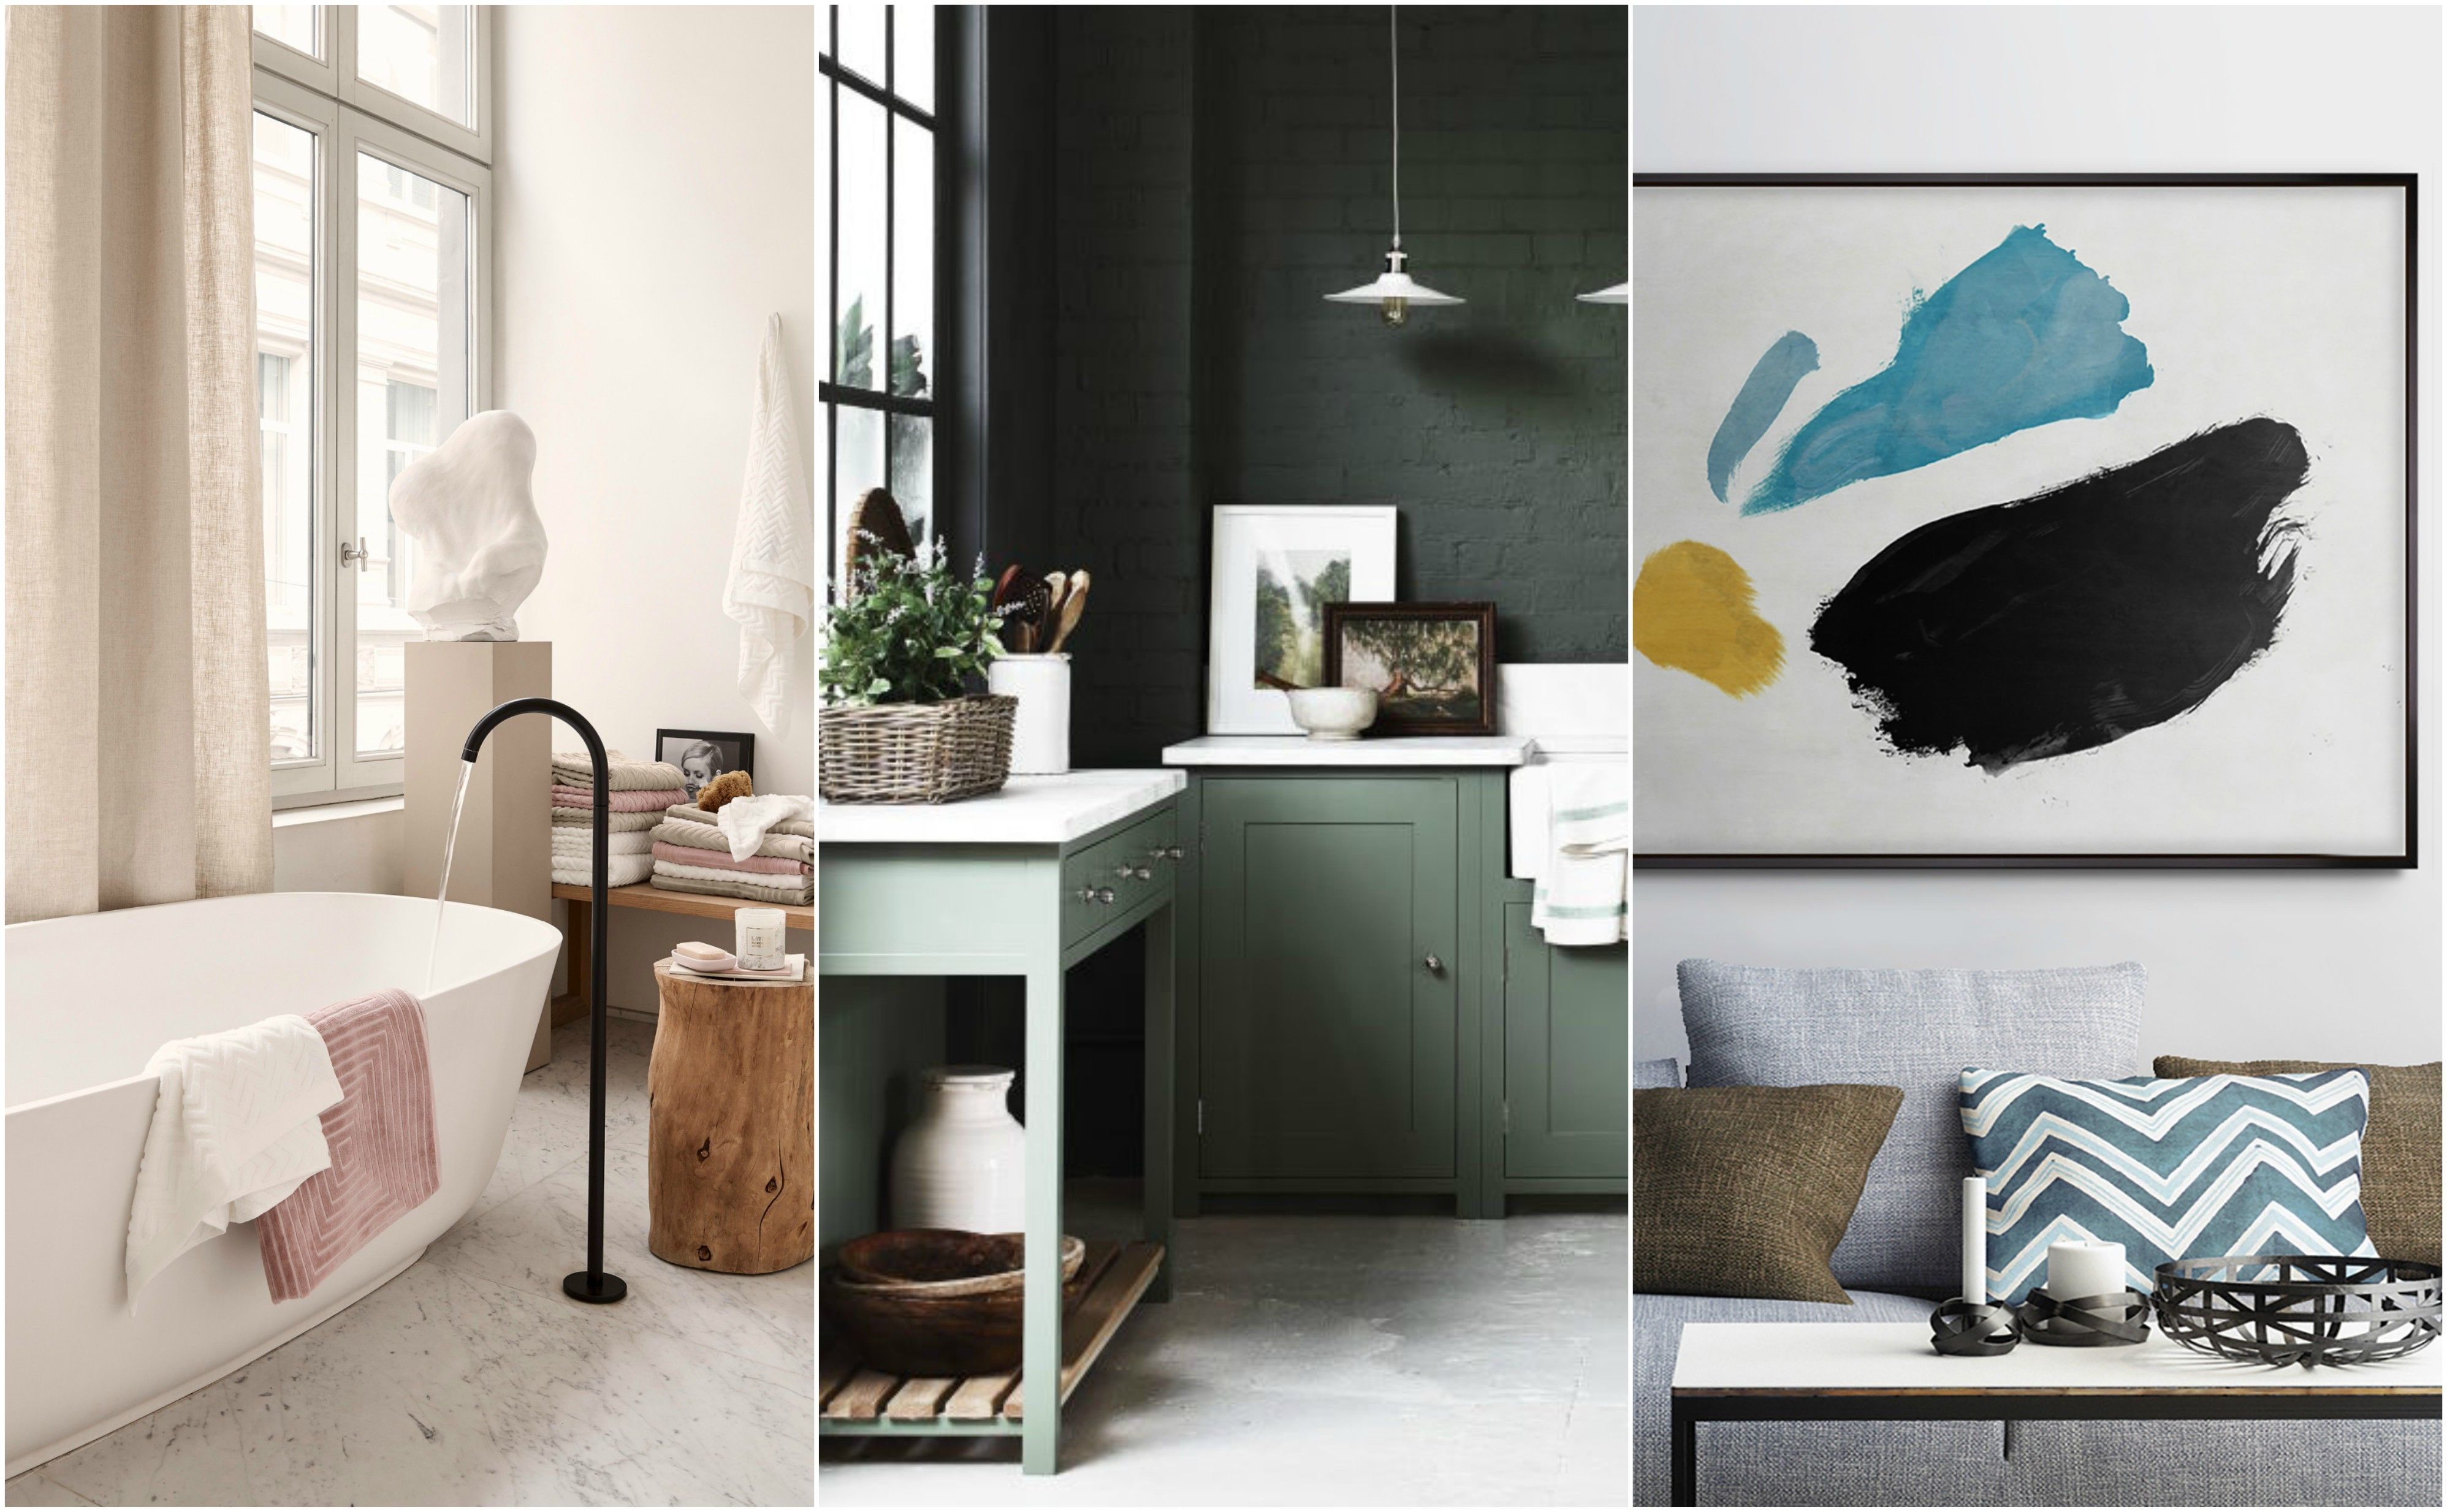 Diy Sos Kitchen Design Julia Kendell S Top Decorating Trends For 2018 Modern Decorating Ideas